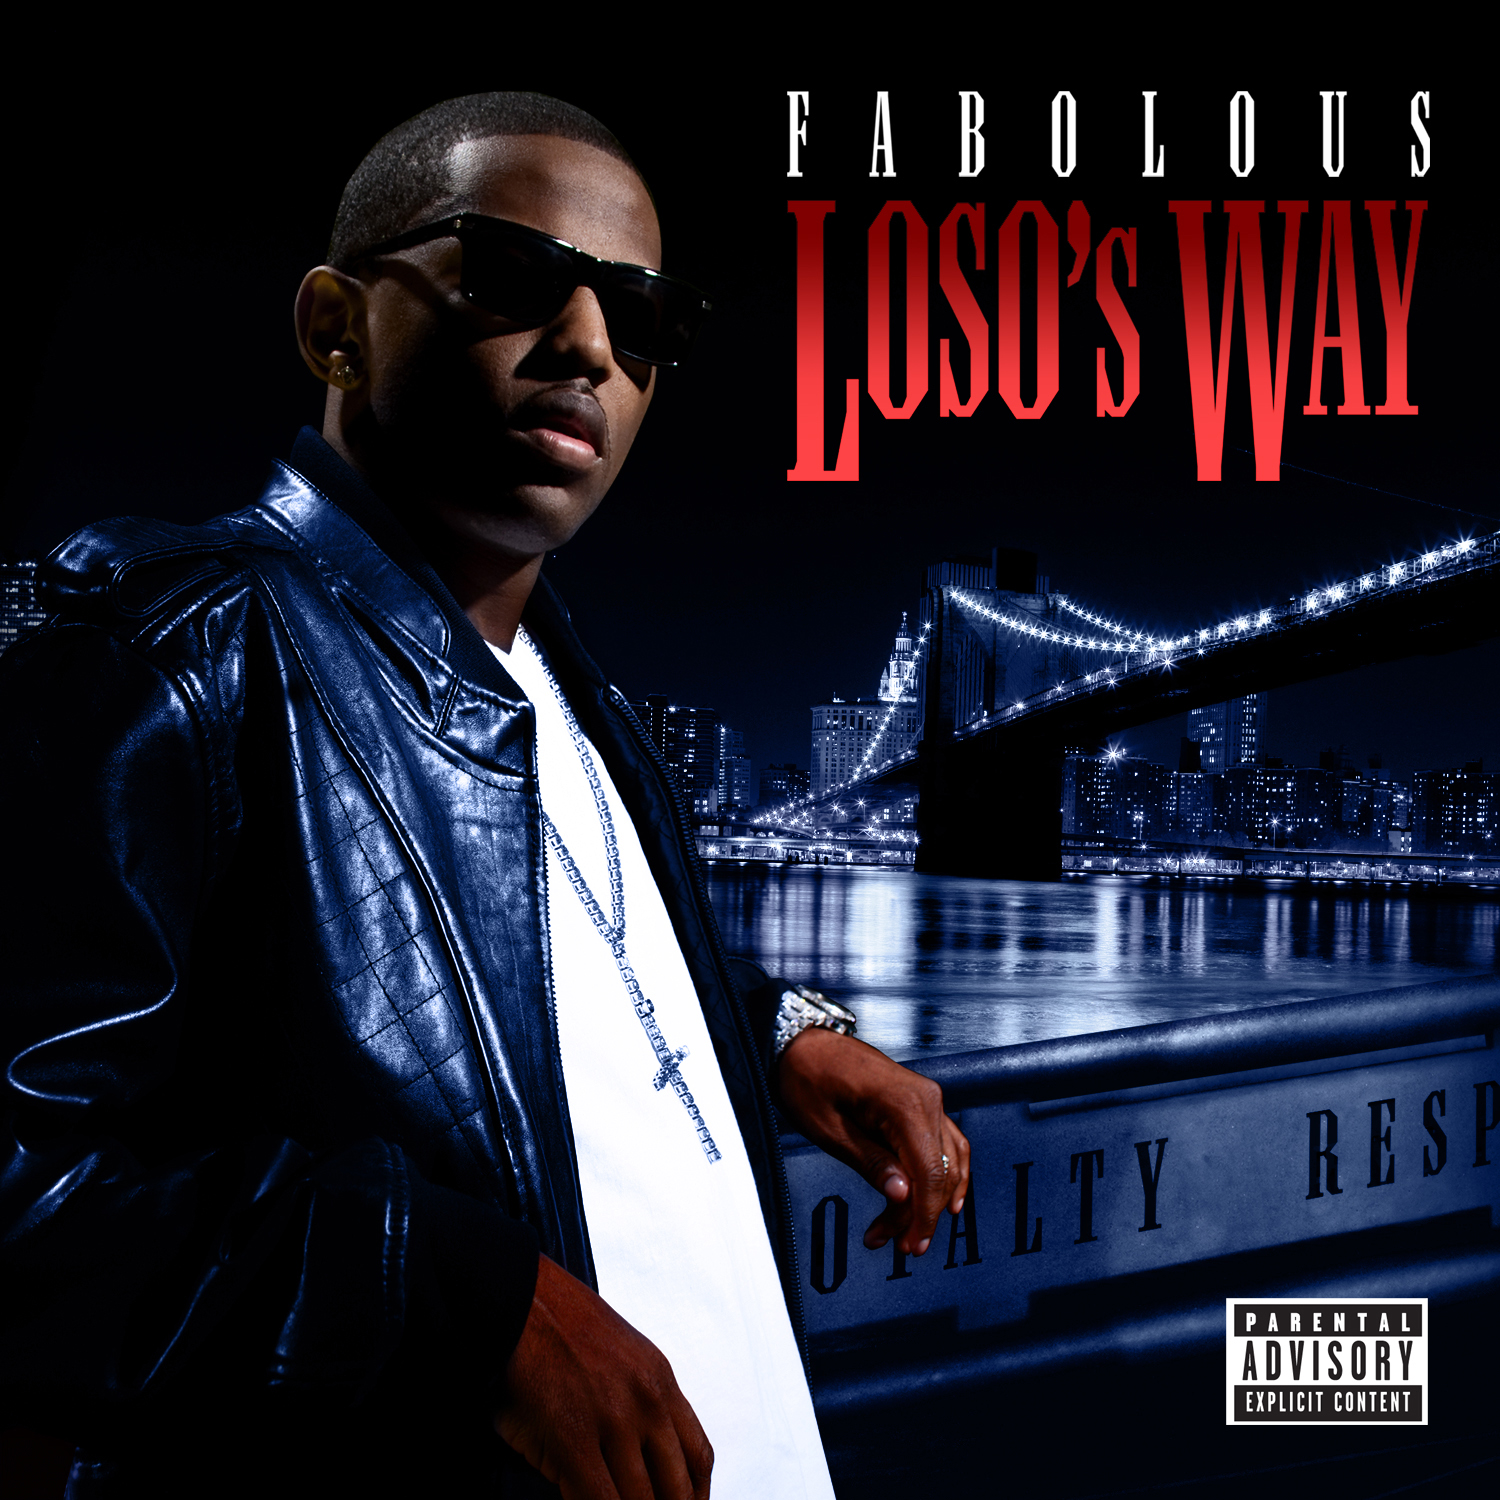 FABOLOUS_LOSOS_WAY_CMP_5X5